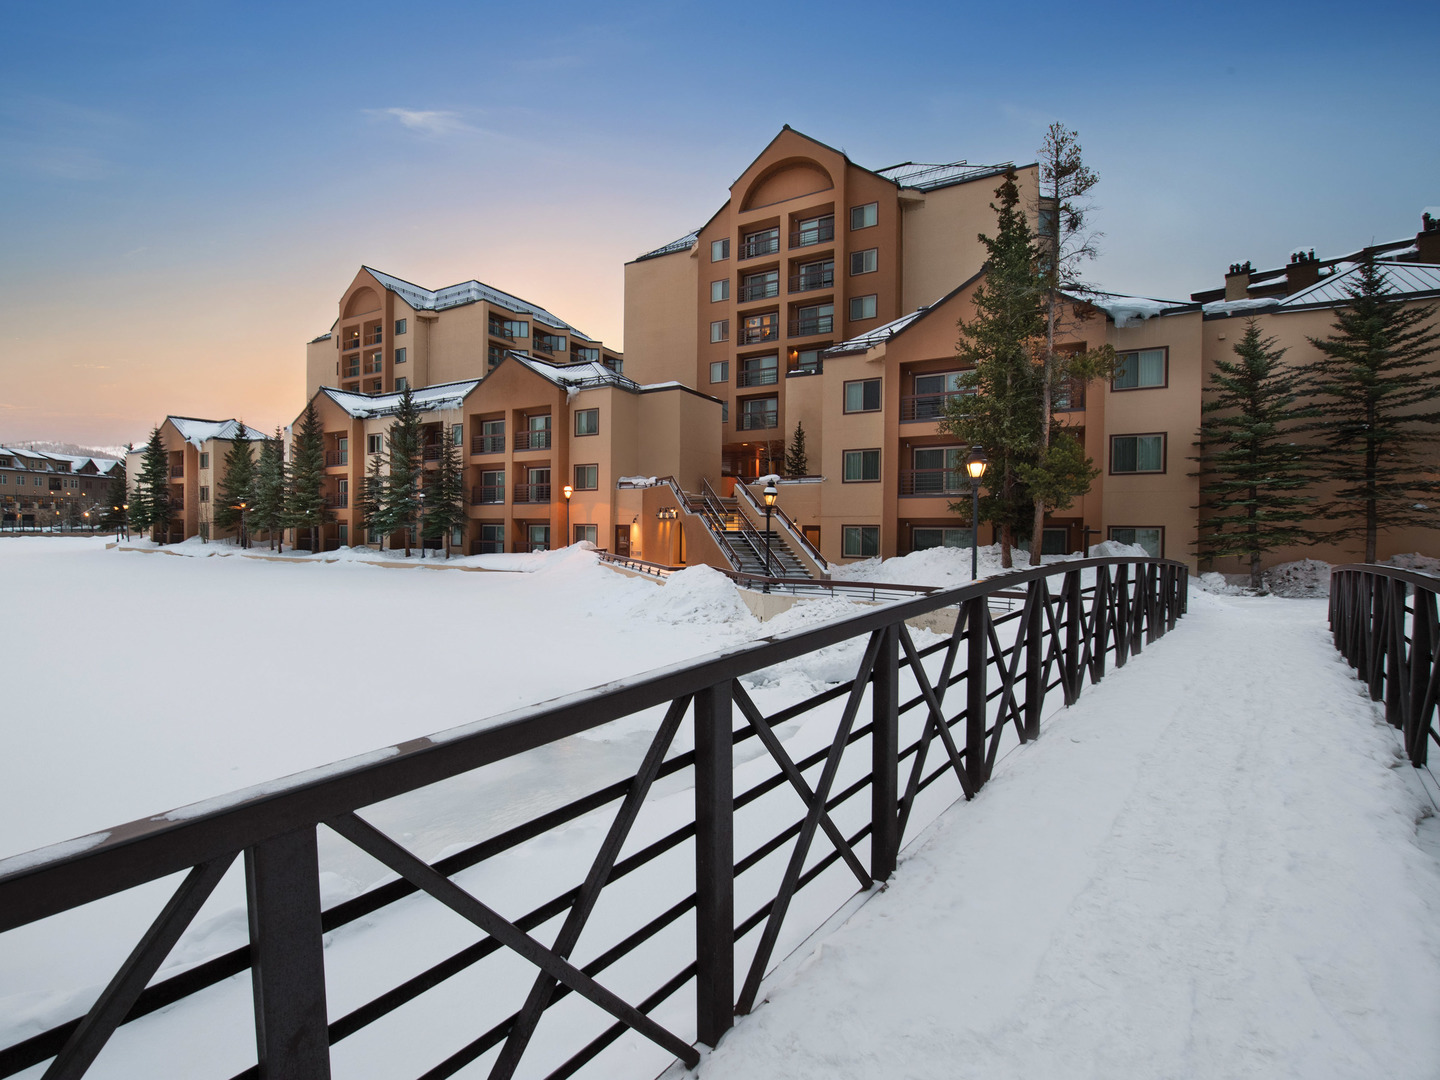 Marriott's Mountain Valley Lodge Exterior. Marriott's Mountain Valley Lodge is located in Breckenridge, Colorado United States.